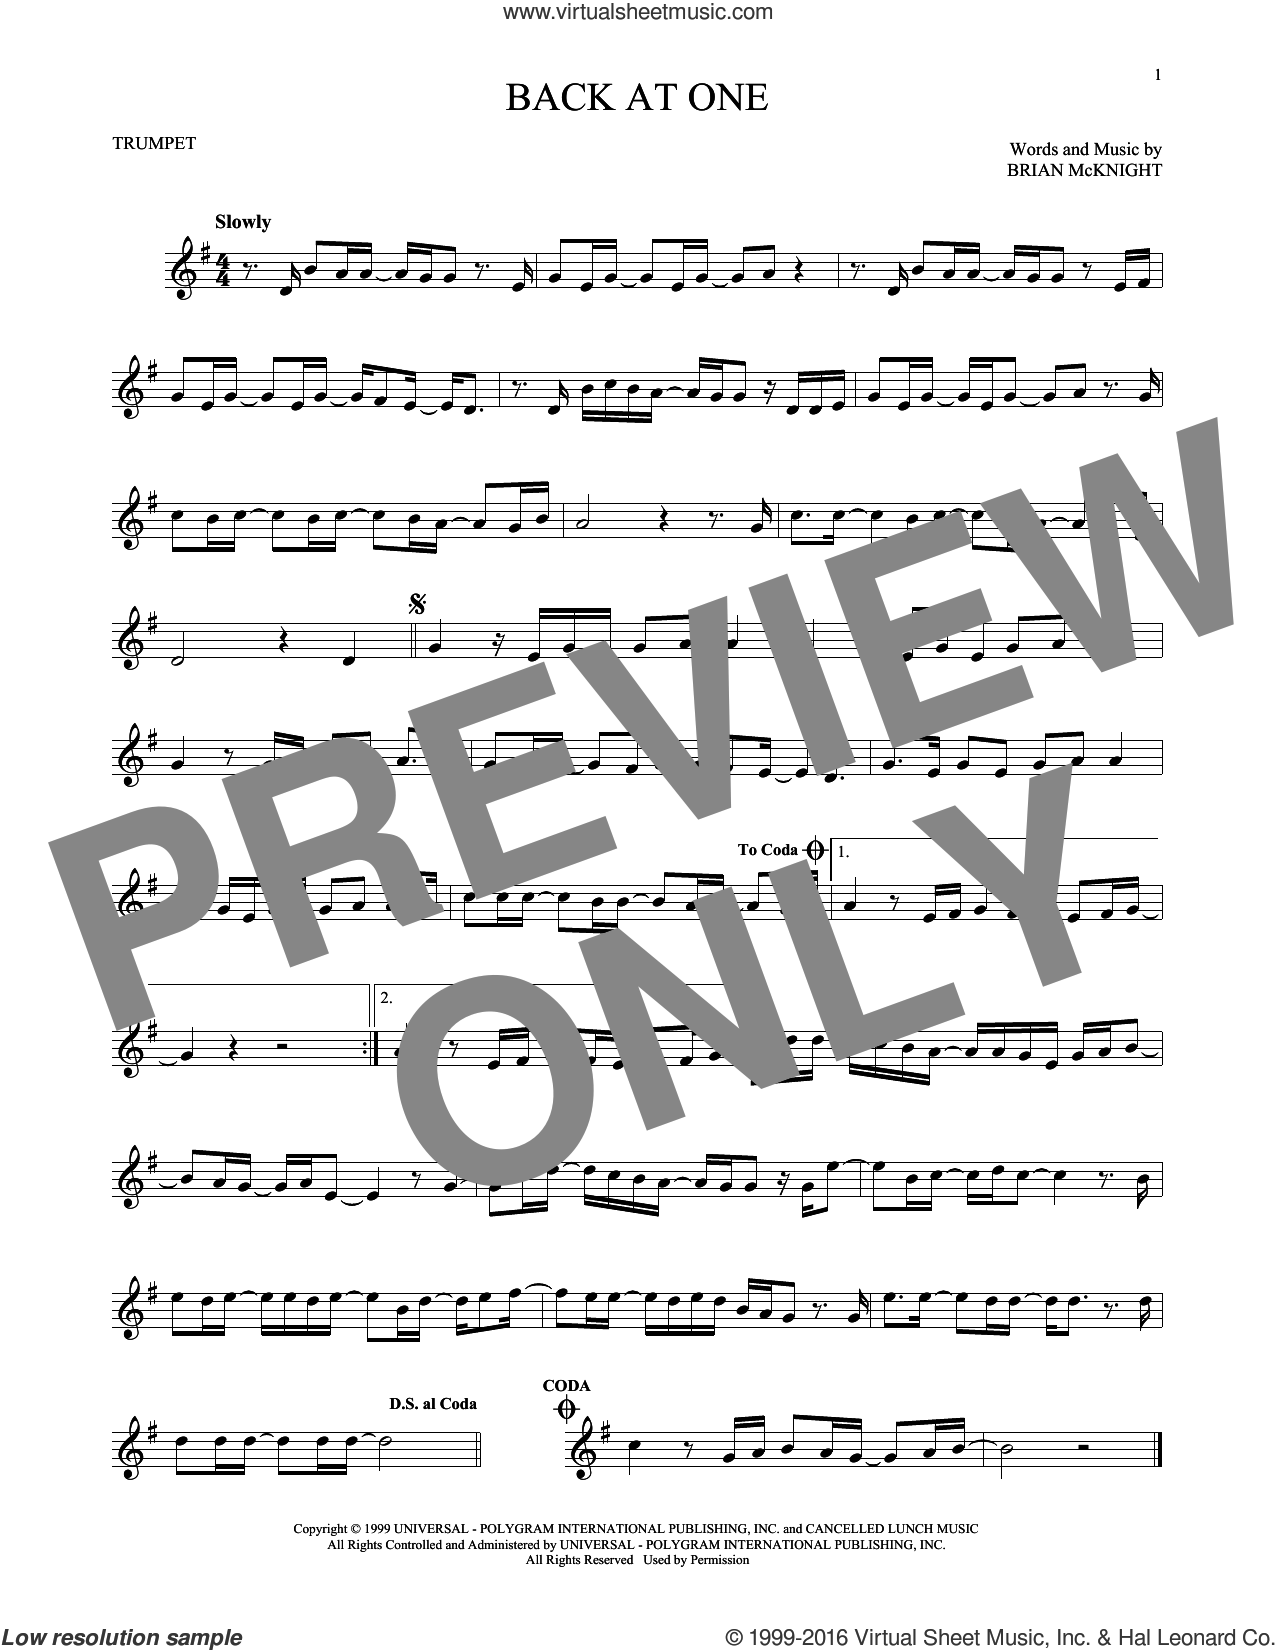 Back At One sheet music for trumpet solo by Brian McKnight, intermediate skill level